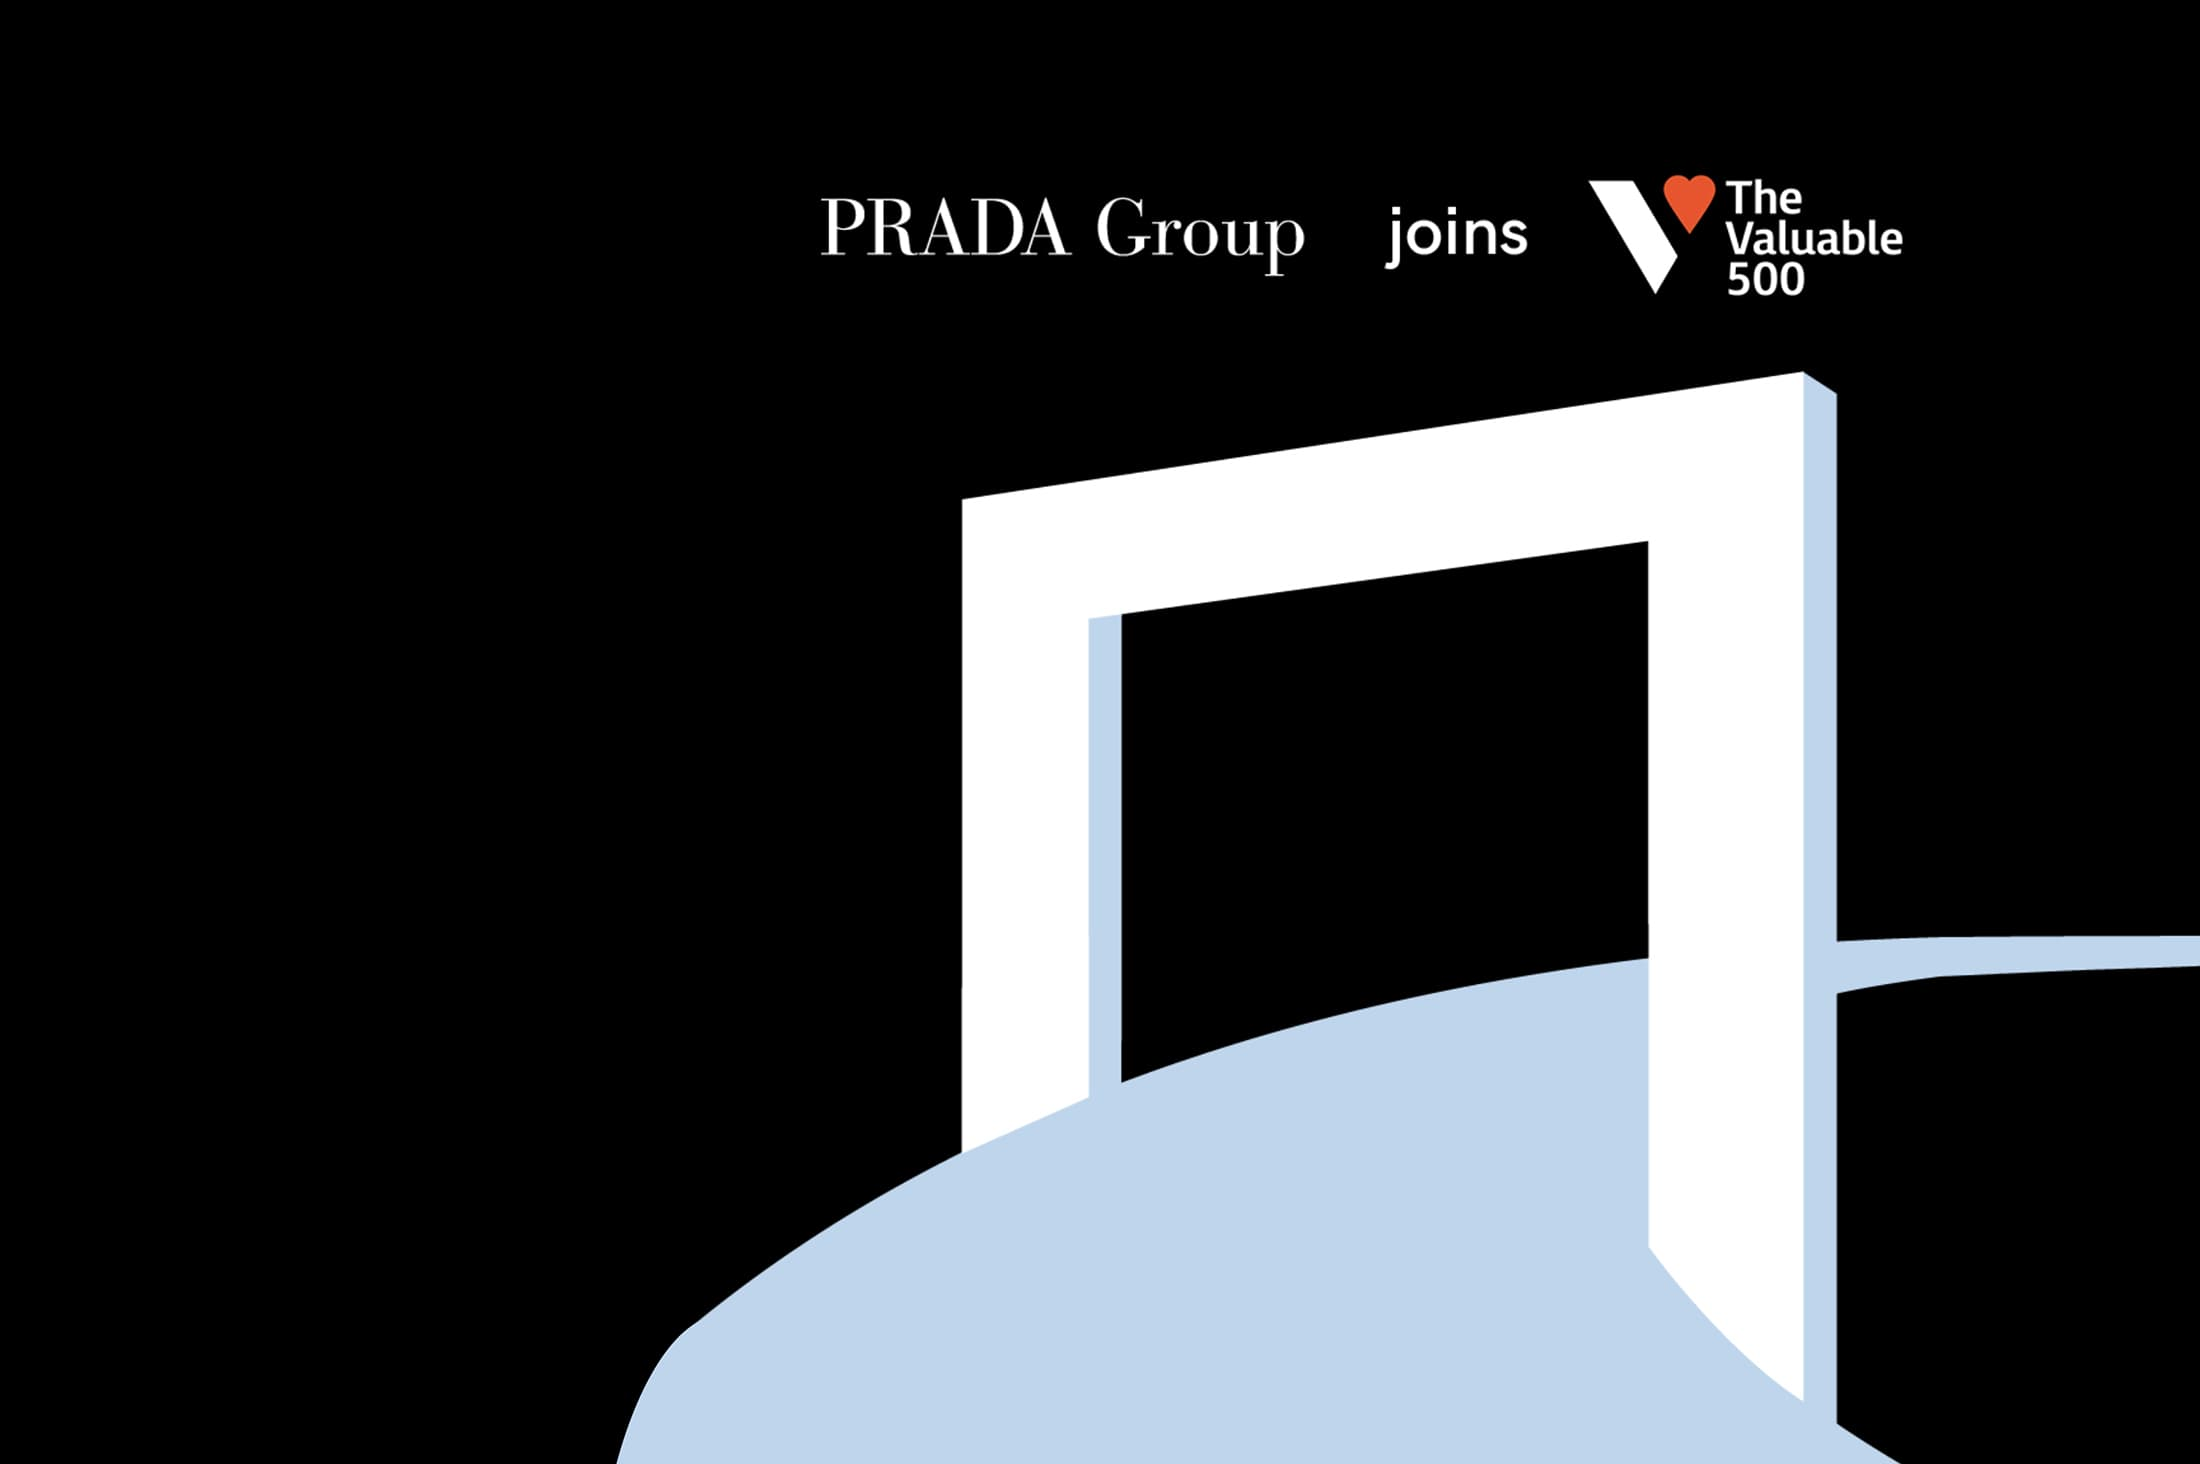 Prada Group Joins The Valuable 500